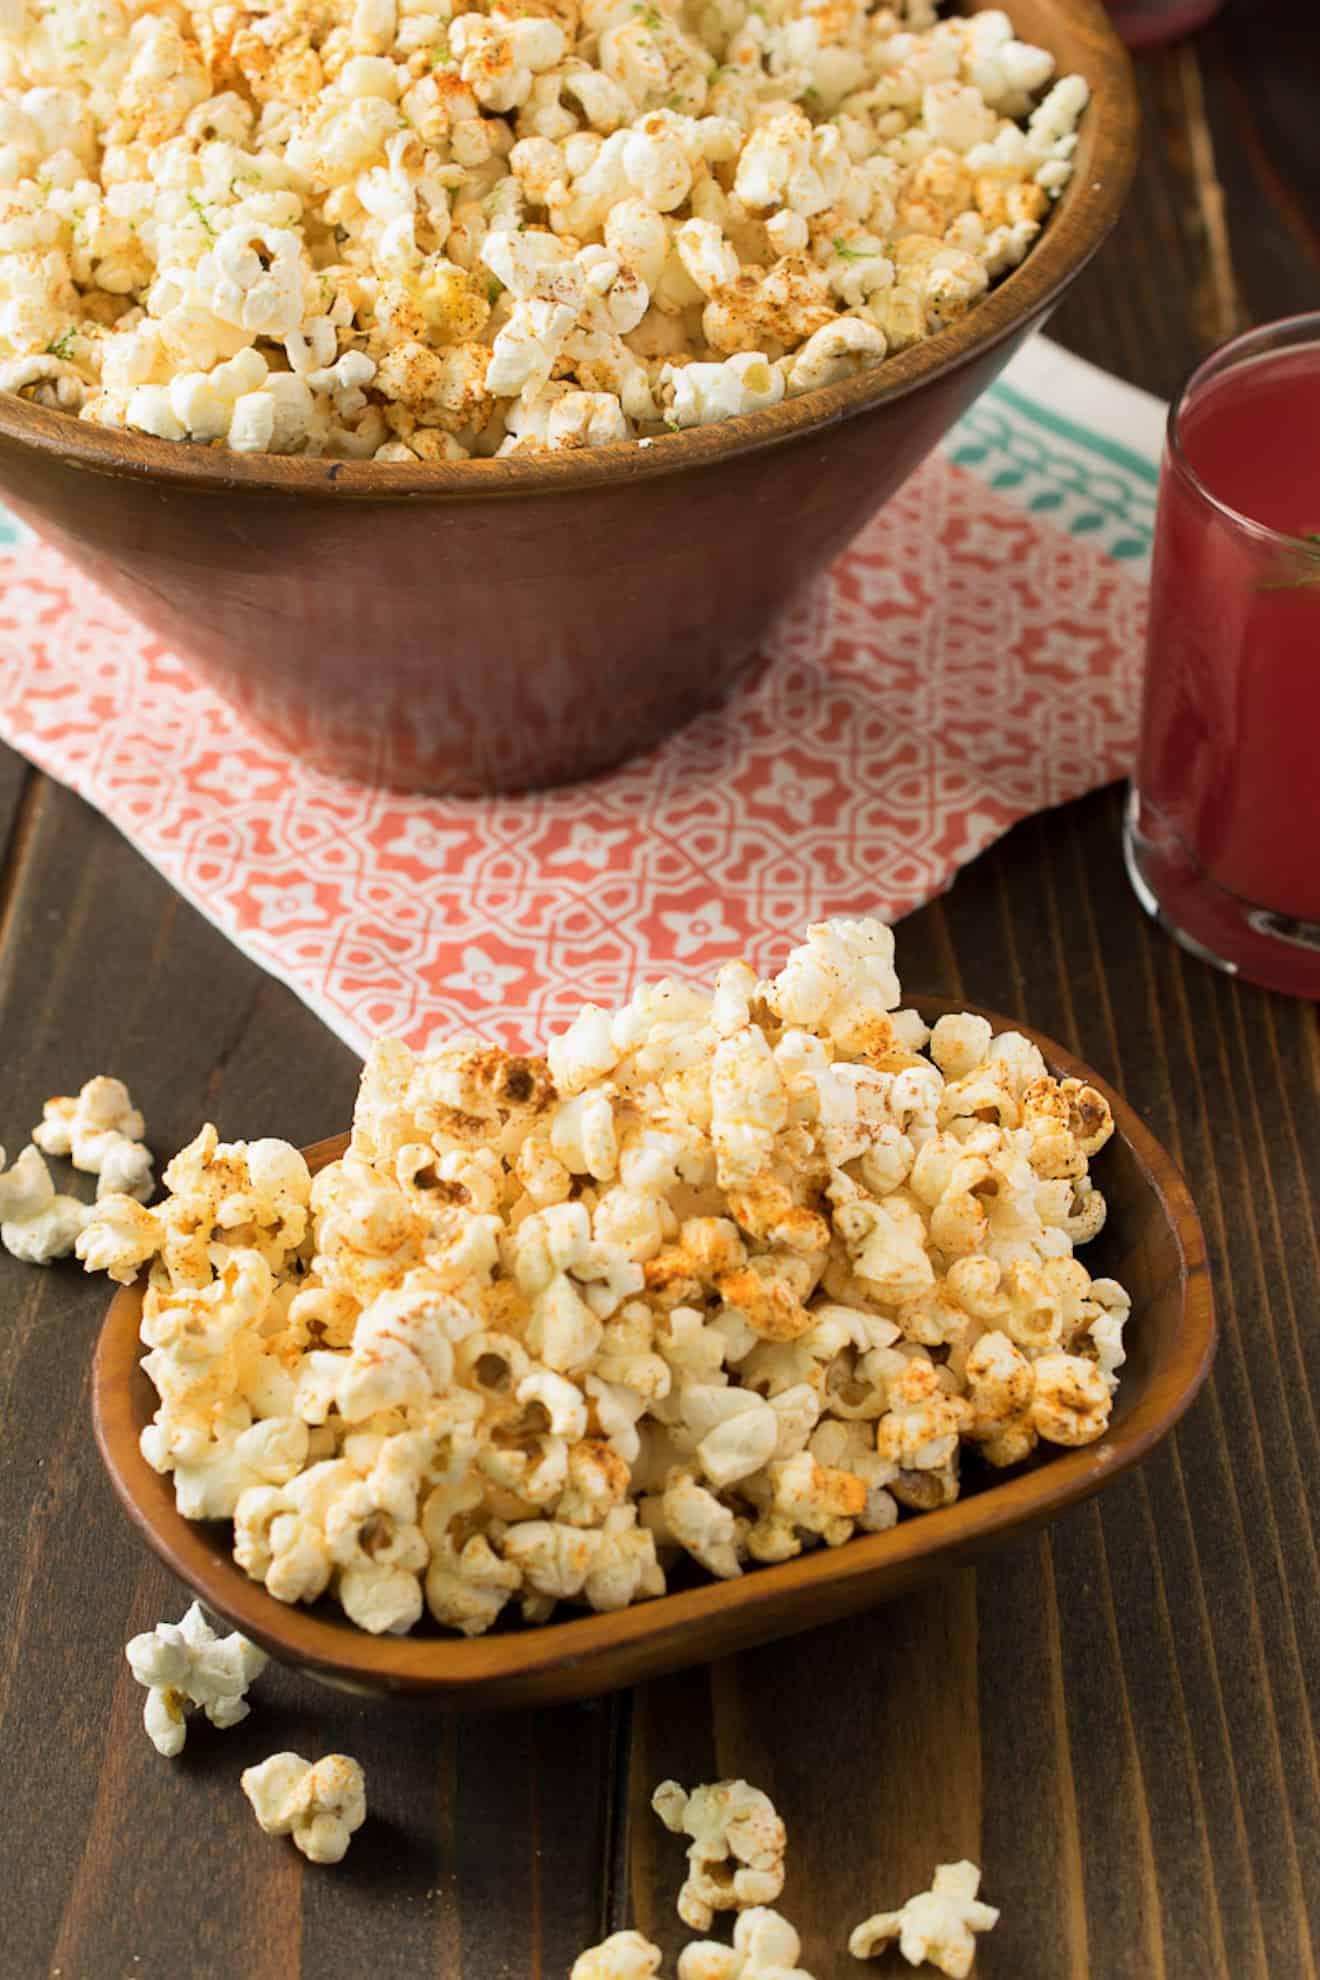 A small wooden bowl and a large round bowl filled with Mexican popcorn